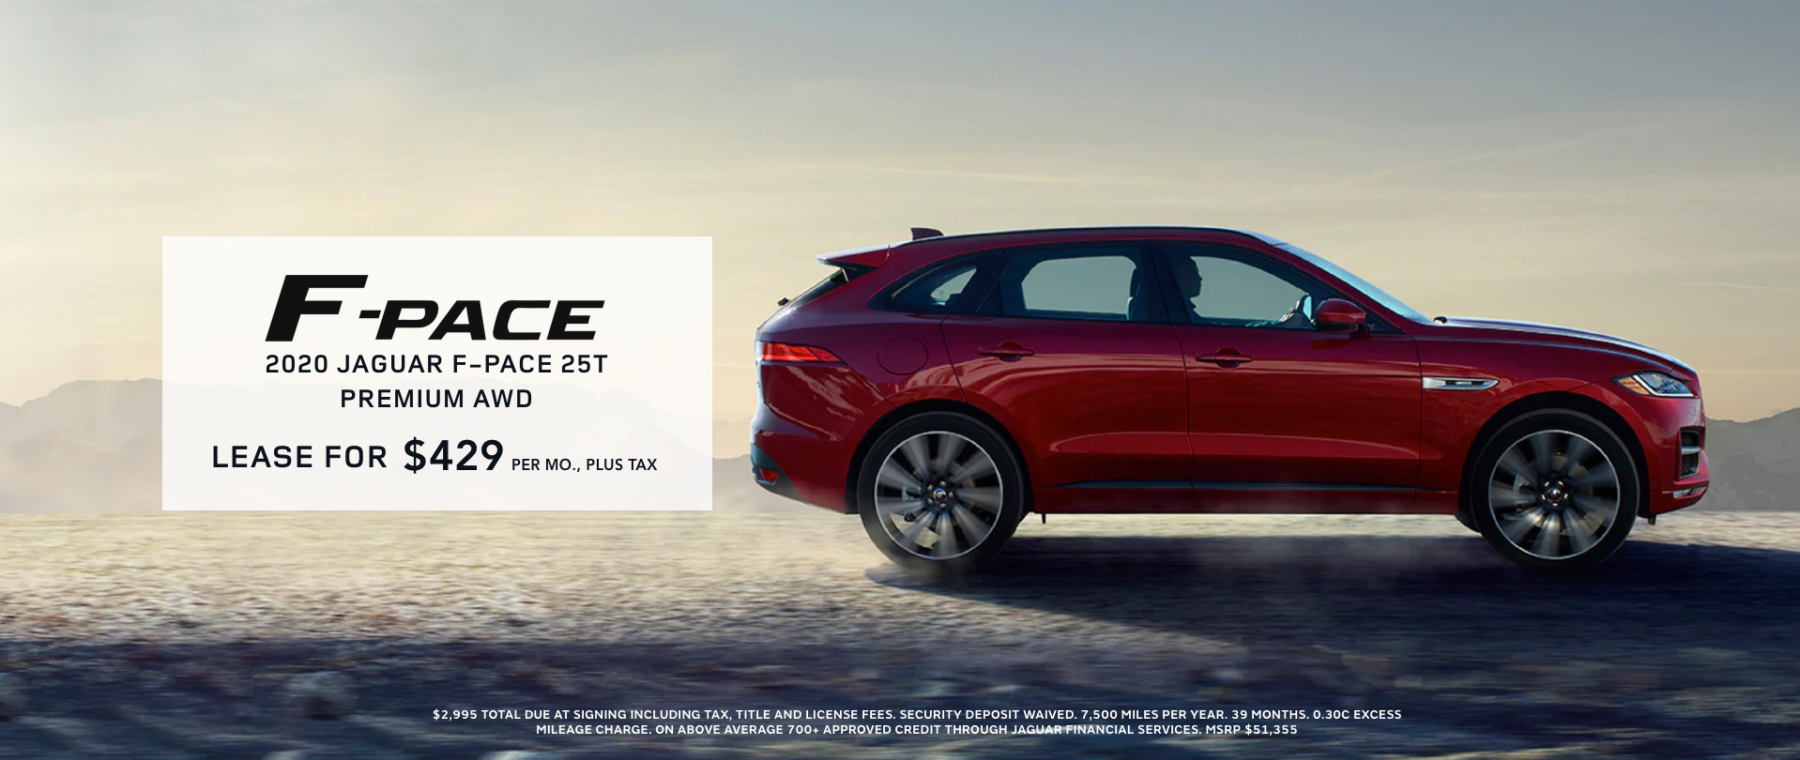 JNB-FPace-Special-2